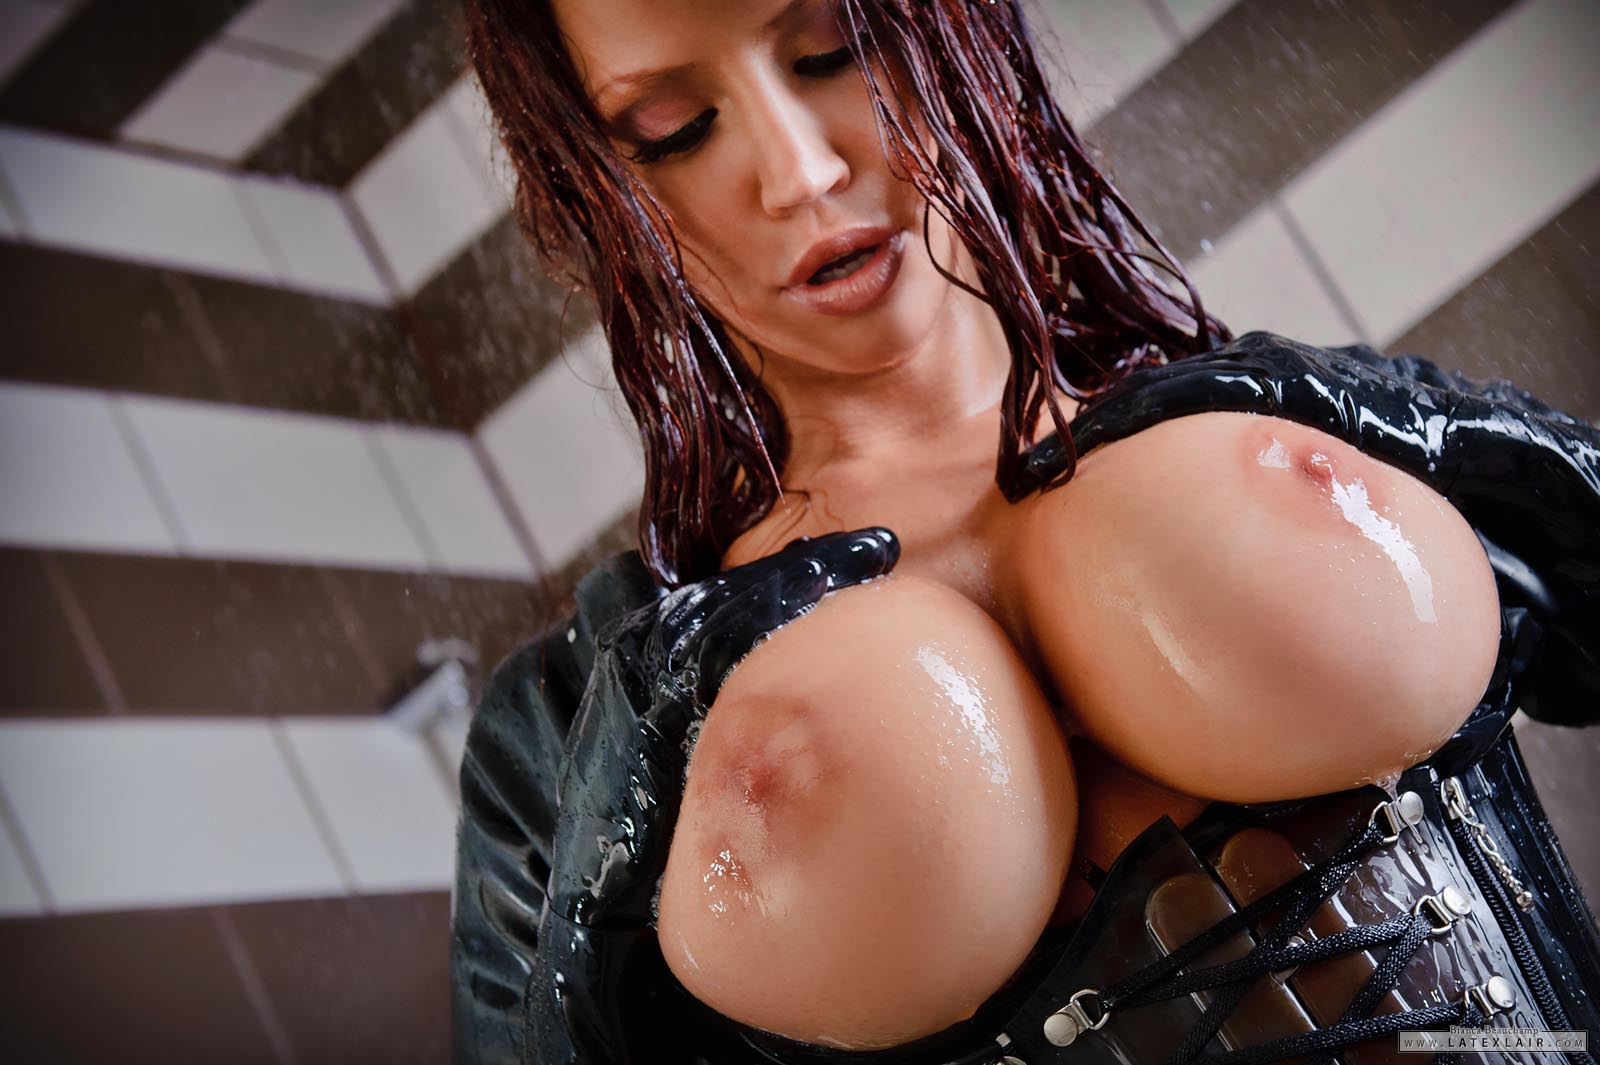 Bianca beauchamp wet and naked